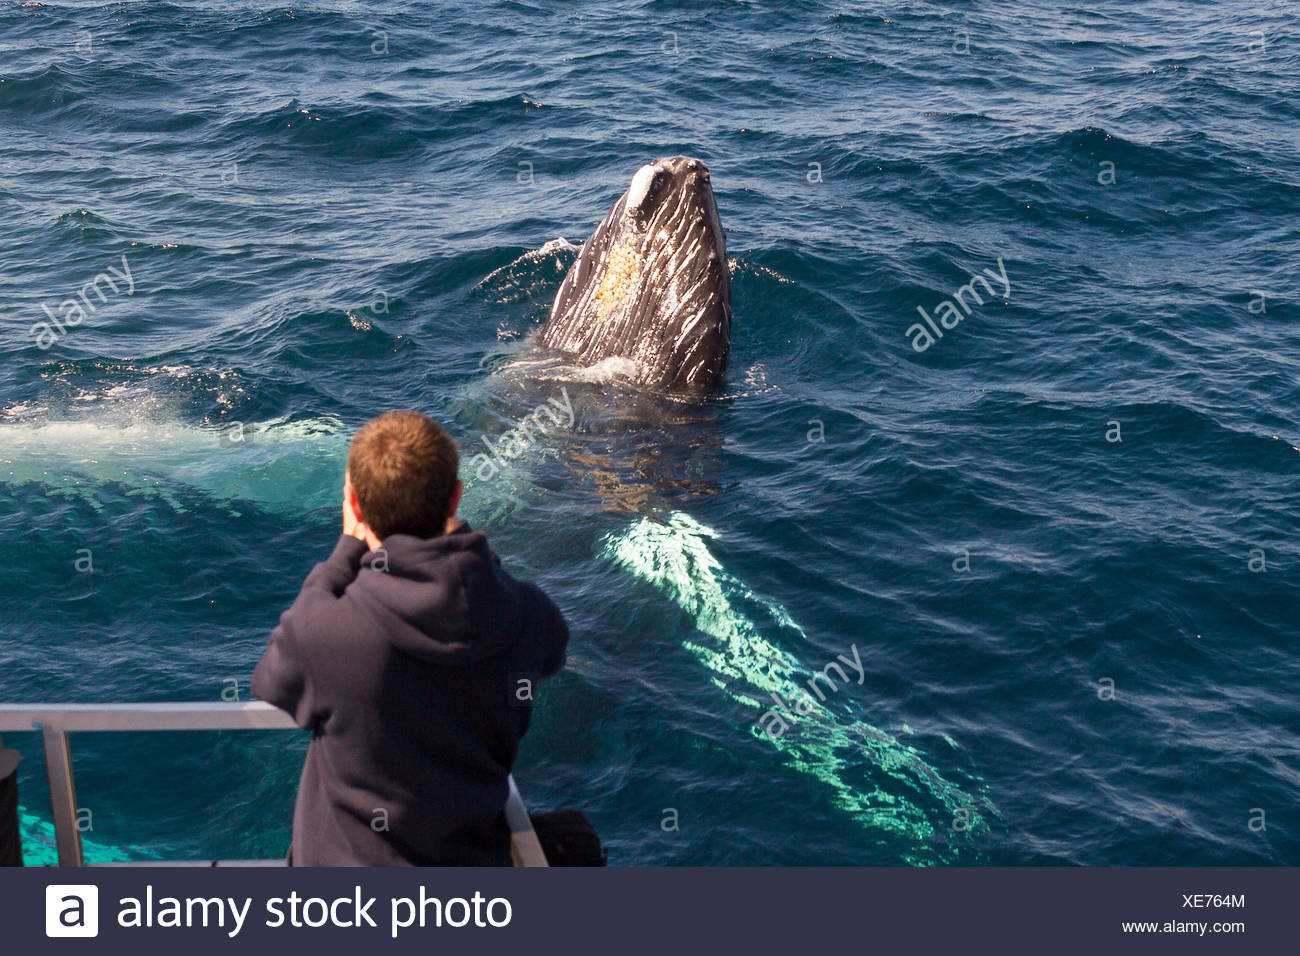 Humpback Whale spyhopping, (Megaptera novaeangliae), while whale watcher takes his photograph, Witless Bay Ecological Reserve, - Stock Image